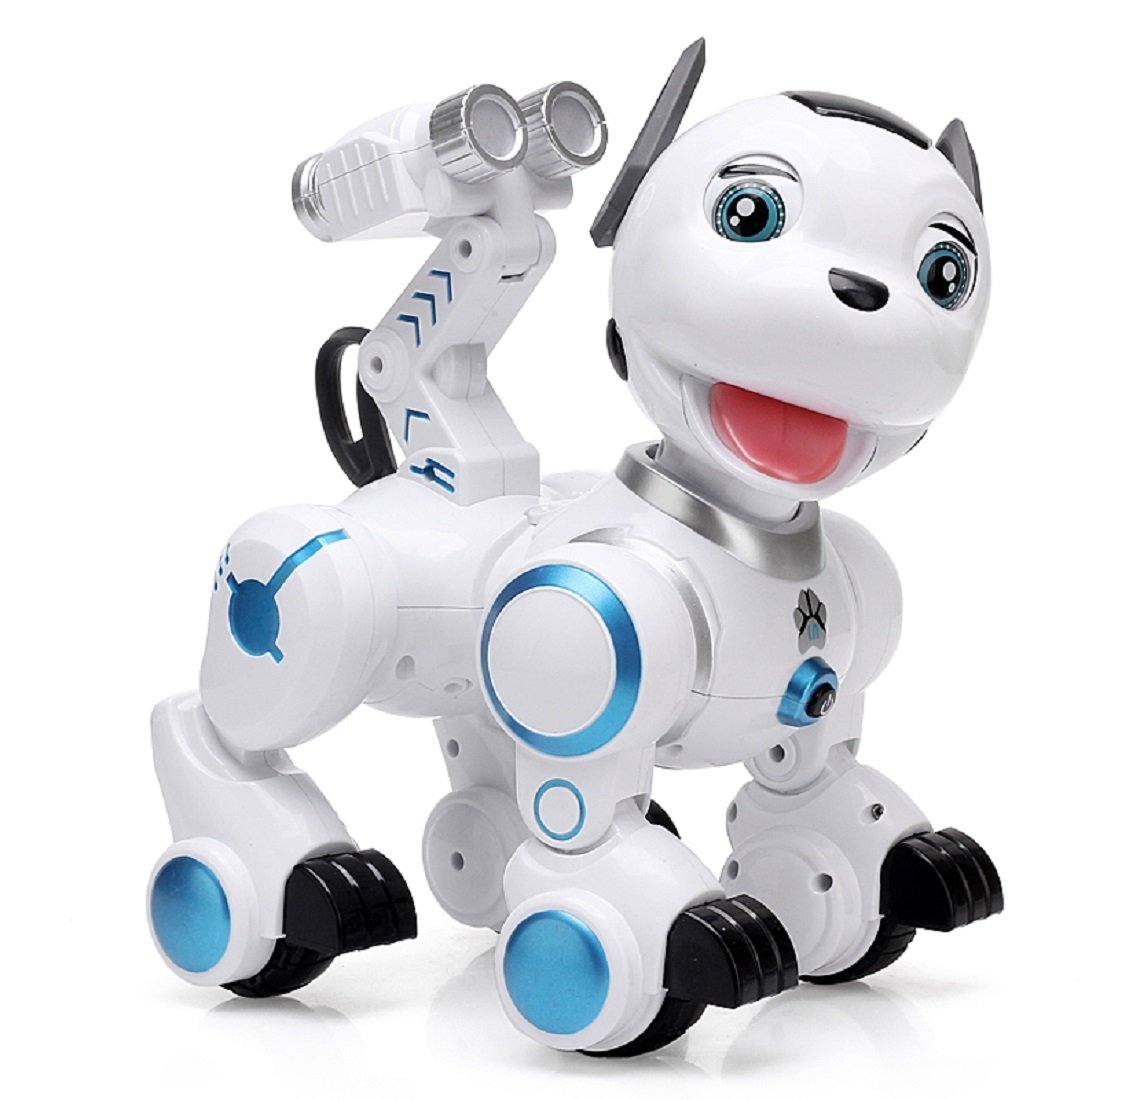 Yeezee Wirless Robot Puppy, Kid's Interactive Patrol Pup with Cannon Ejector, Walking, Blink, Shake Head,Touch Response, Dancing, Walking, Turning Around